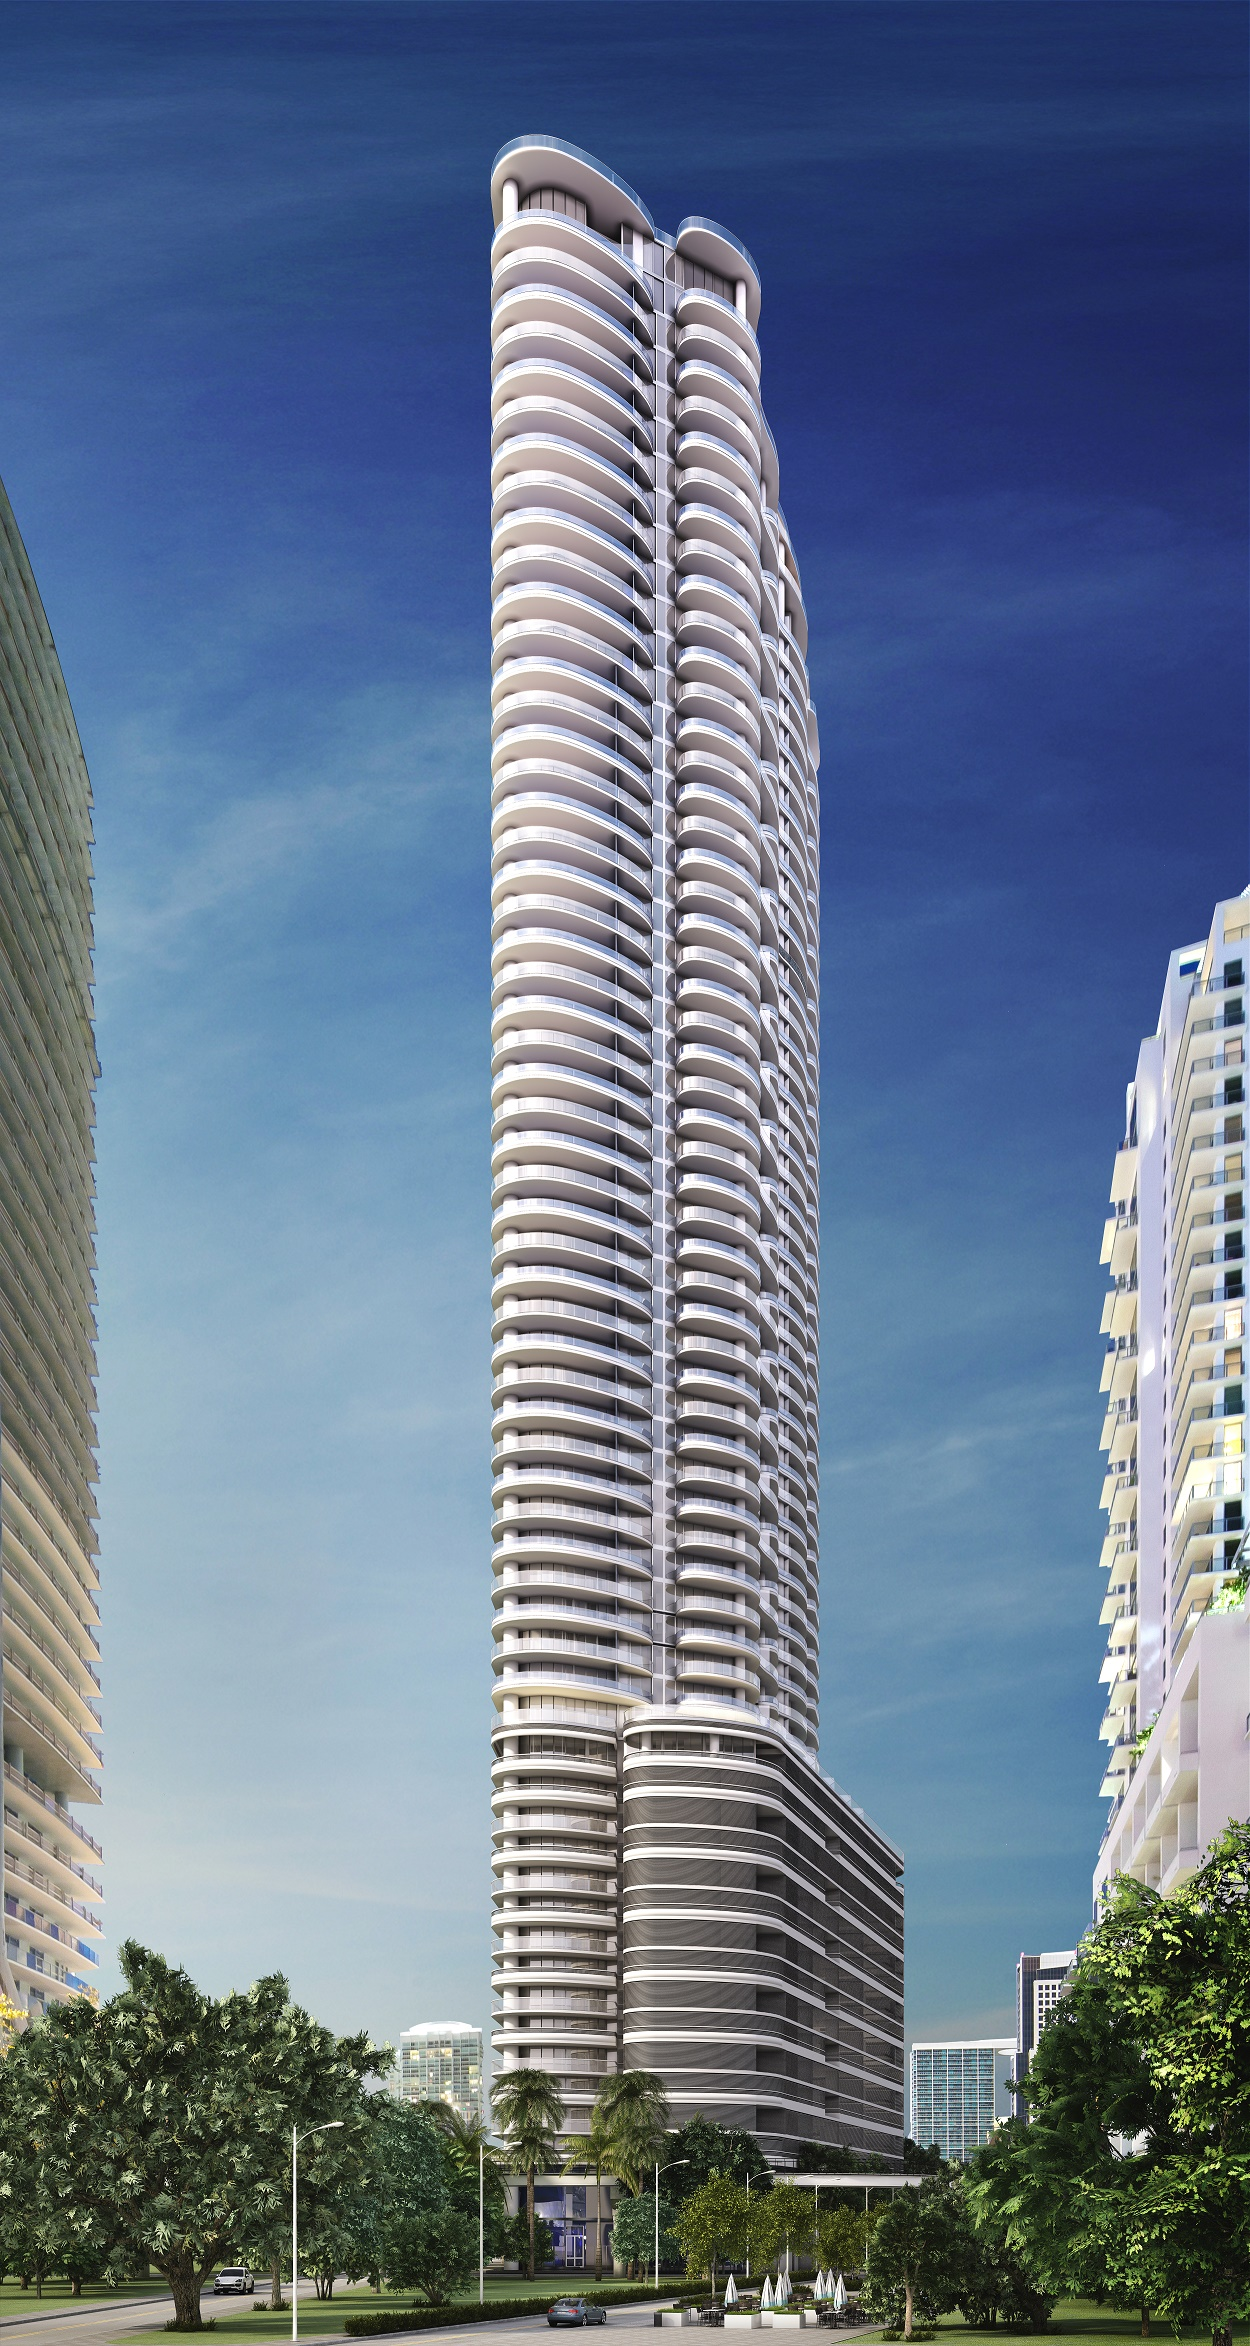 Brickell at Miami 1001 South Miami Avenue, Florida 33130